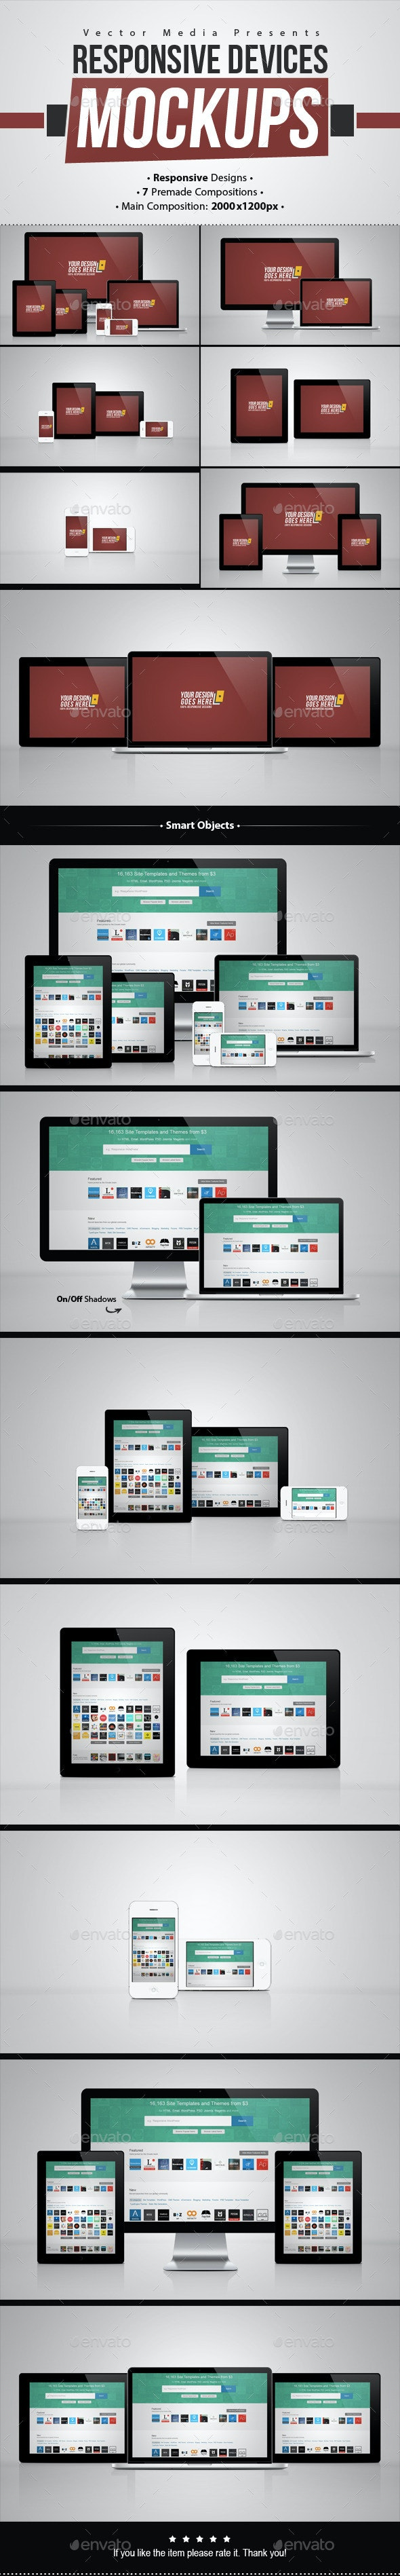 Responsive Devices - Mock-ups - Multiple Displays